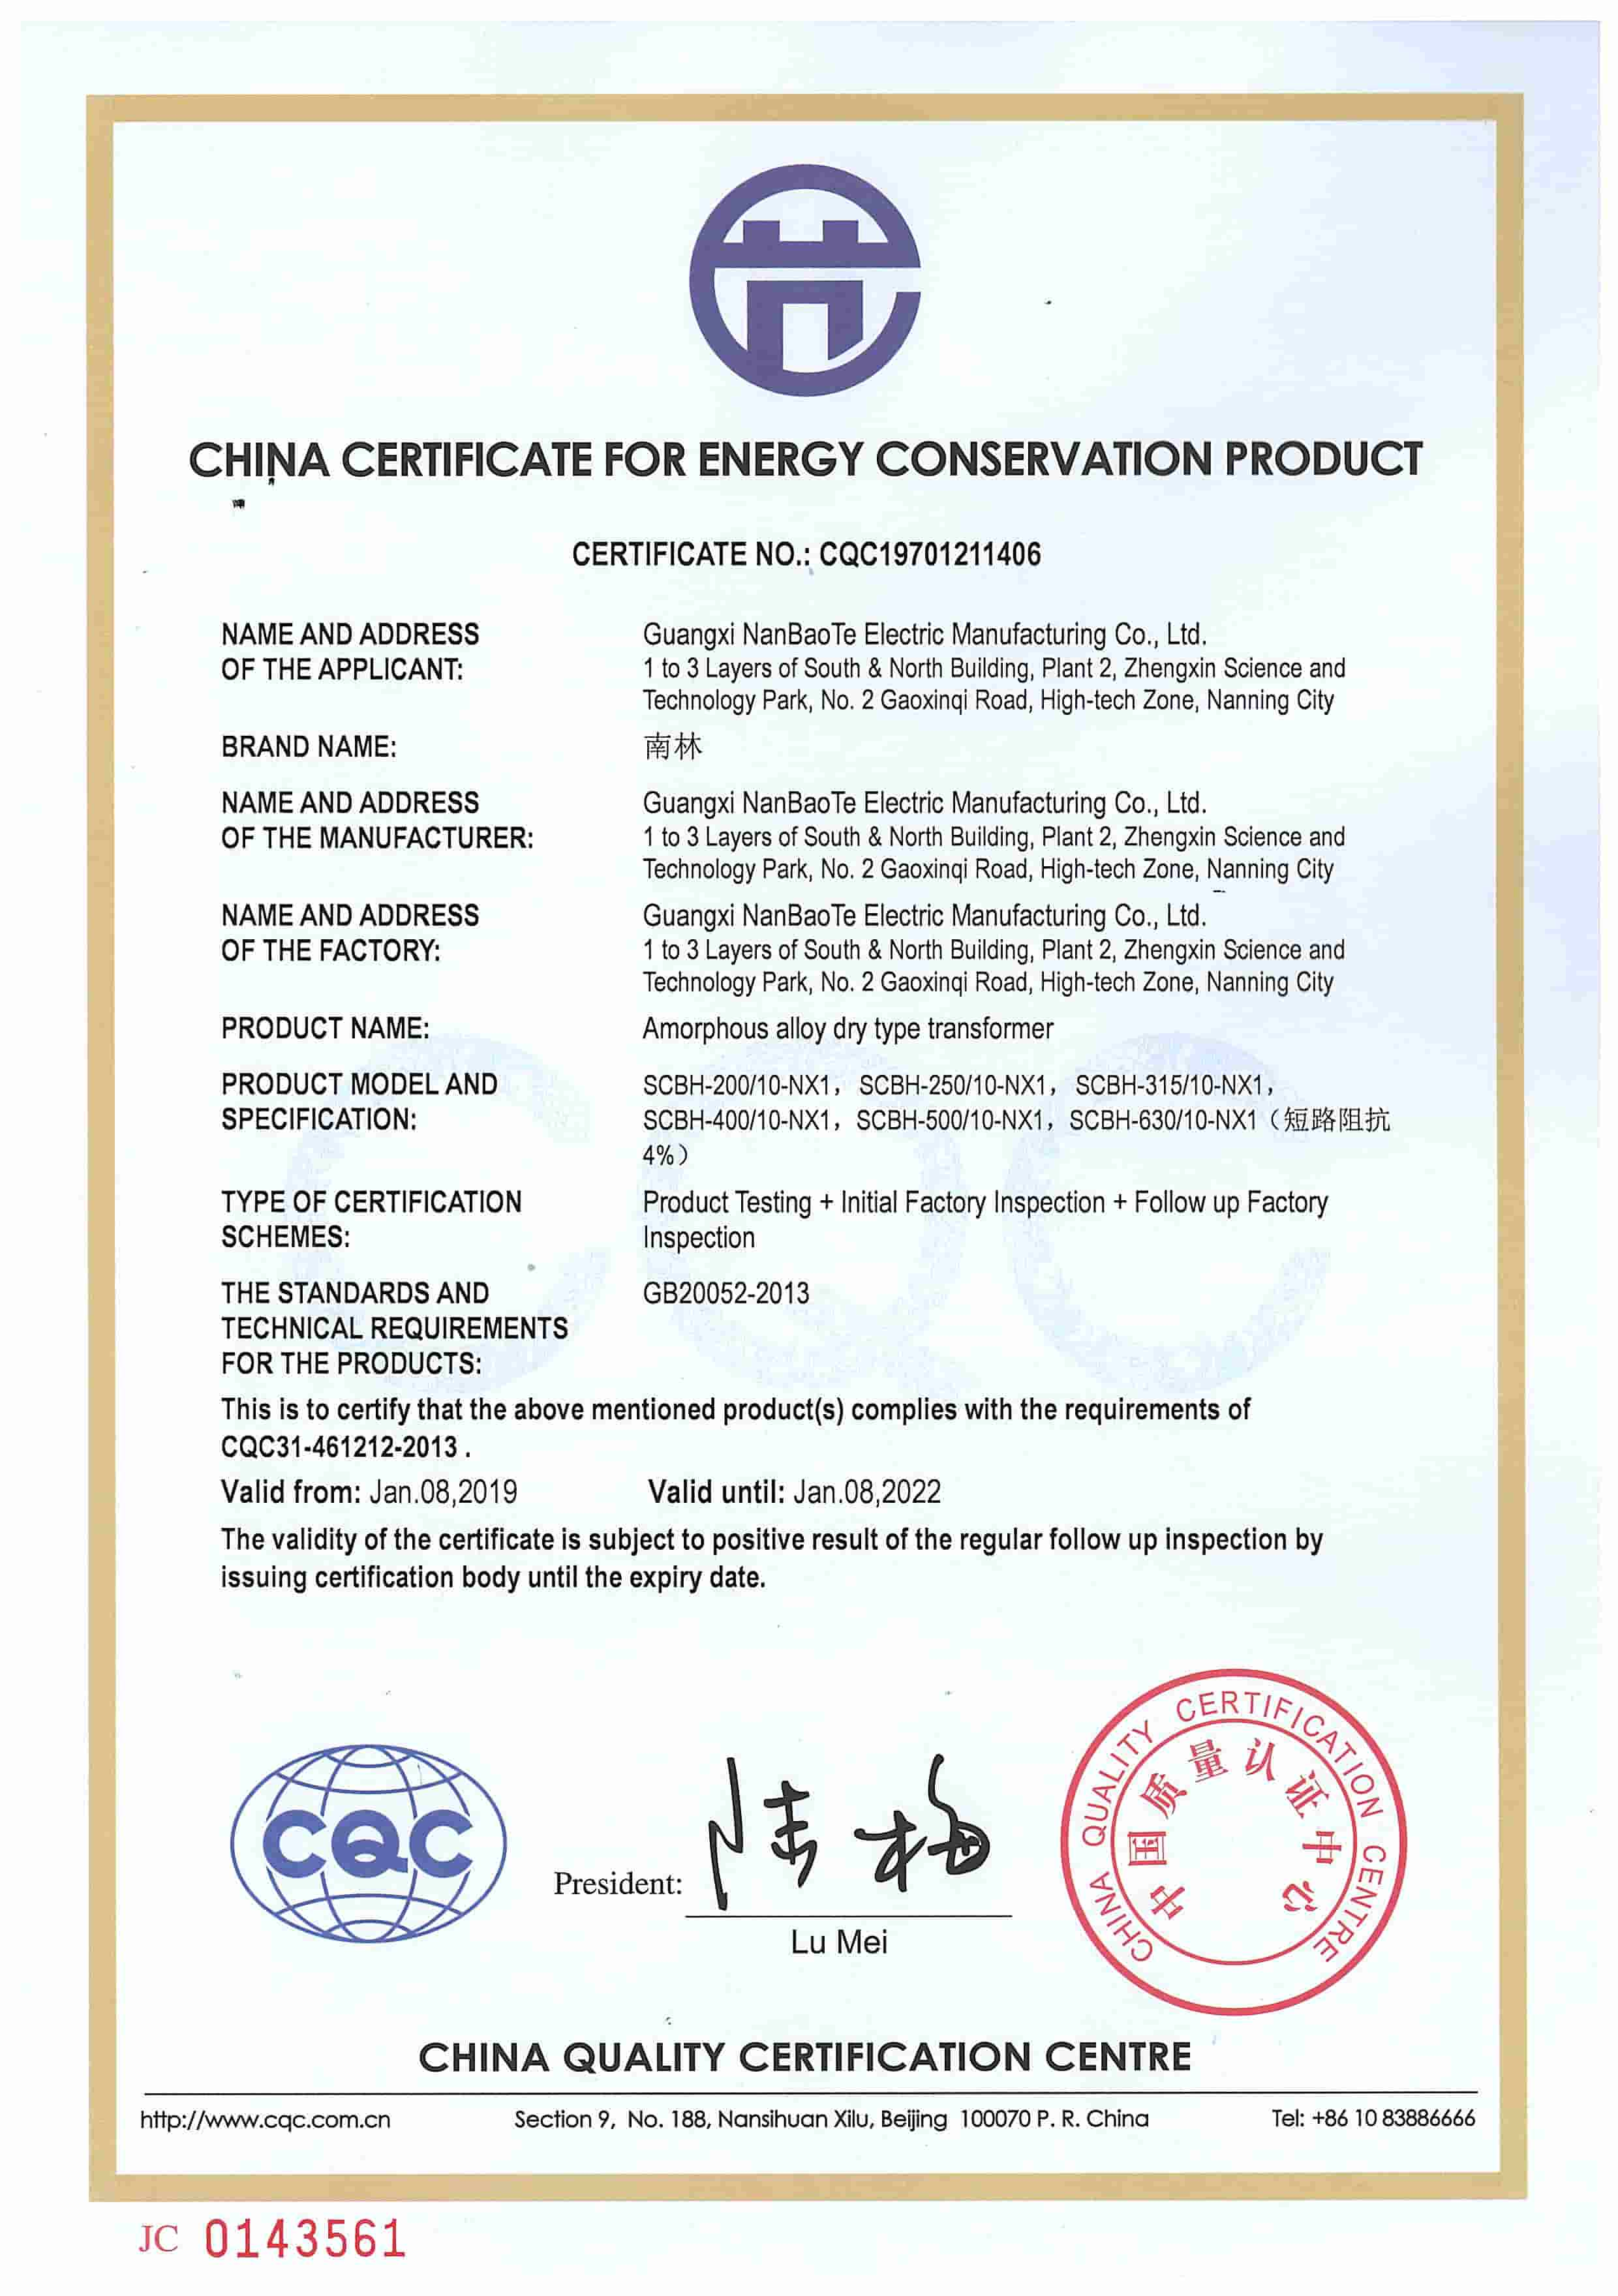 Amorphous Alloy Dry Type Transformer Energy Conservation Product Certificate